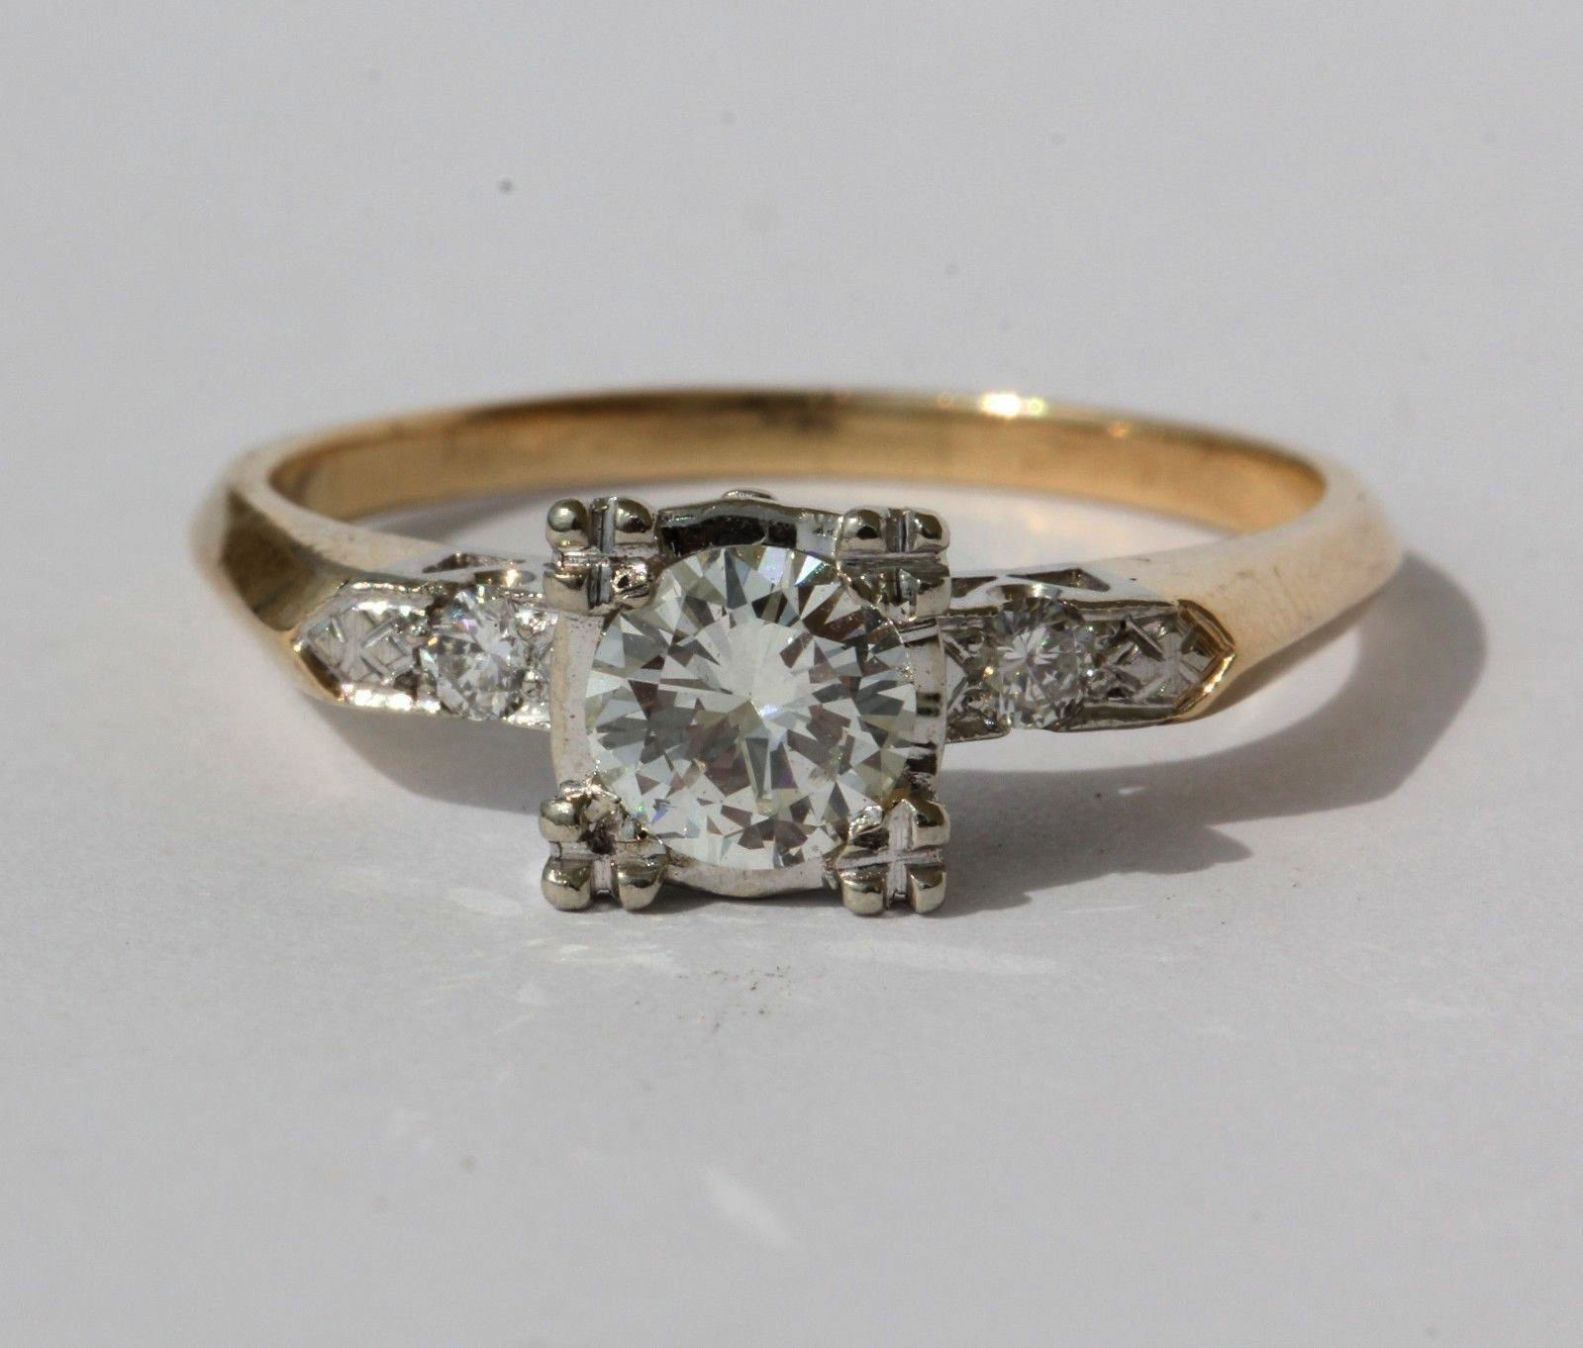 Stunning Vintage Wedding Rings For Sale White Gold Diamond Engagement Ring Wedding Rings Vintage Engagement Rings